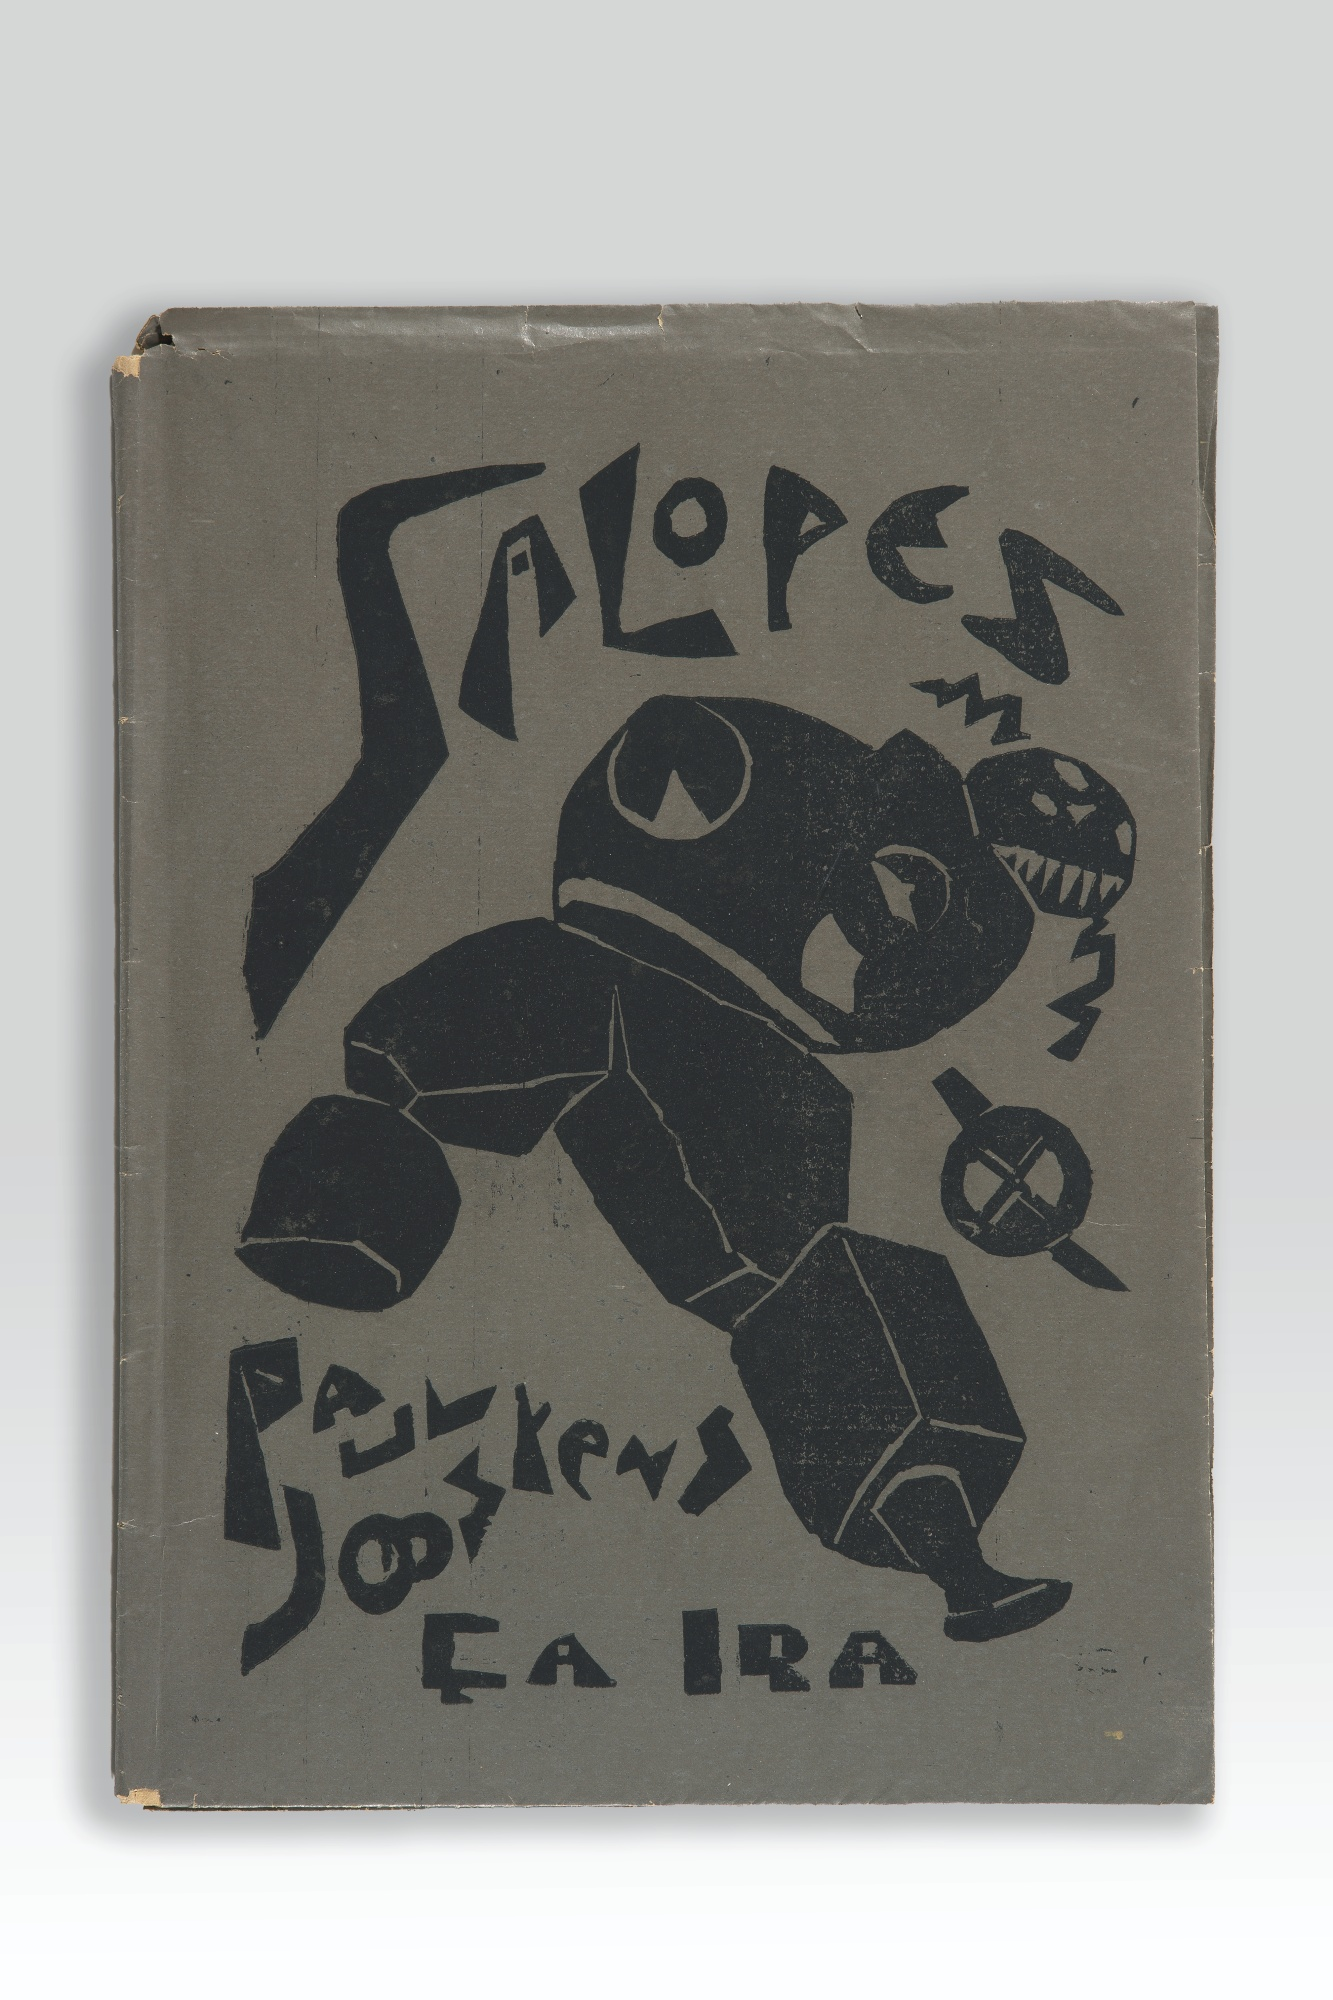 """Salopes,"" by Paul Joostens, 19"